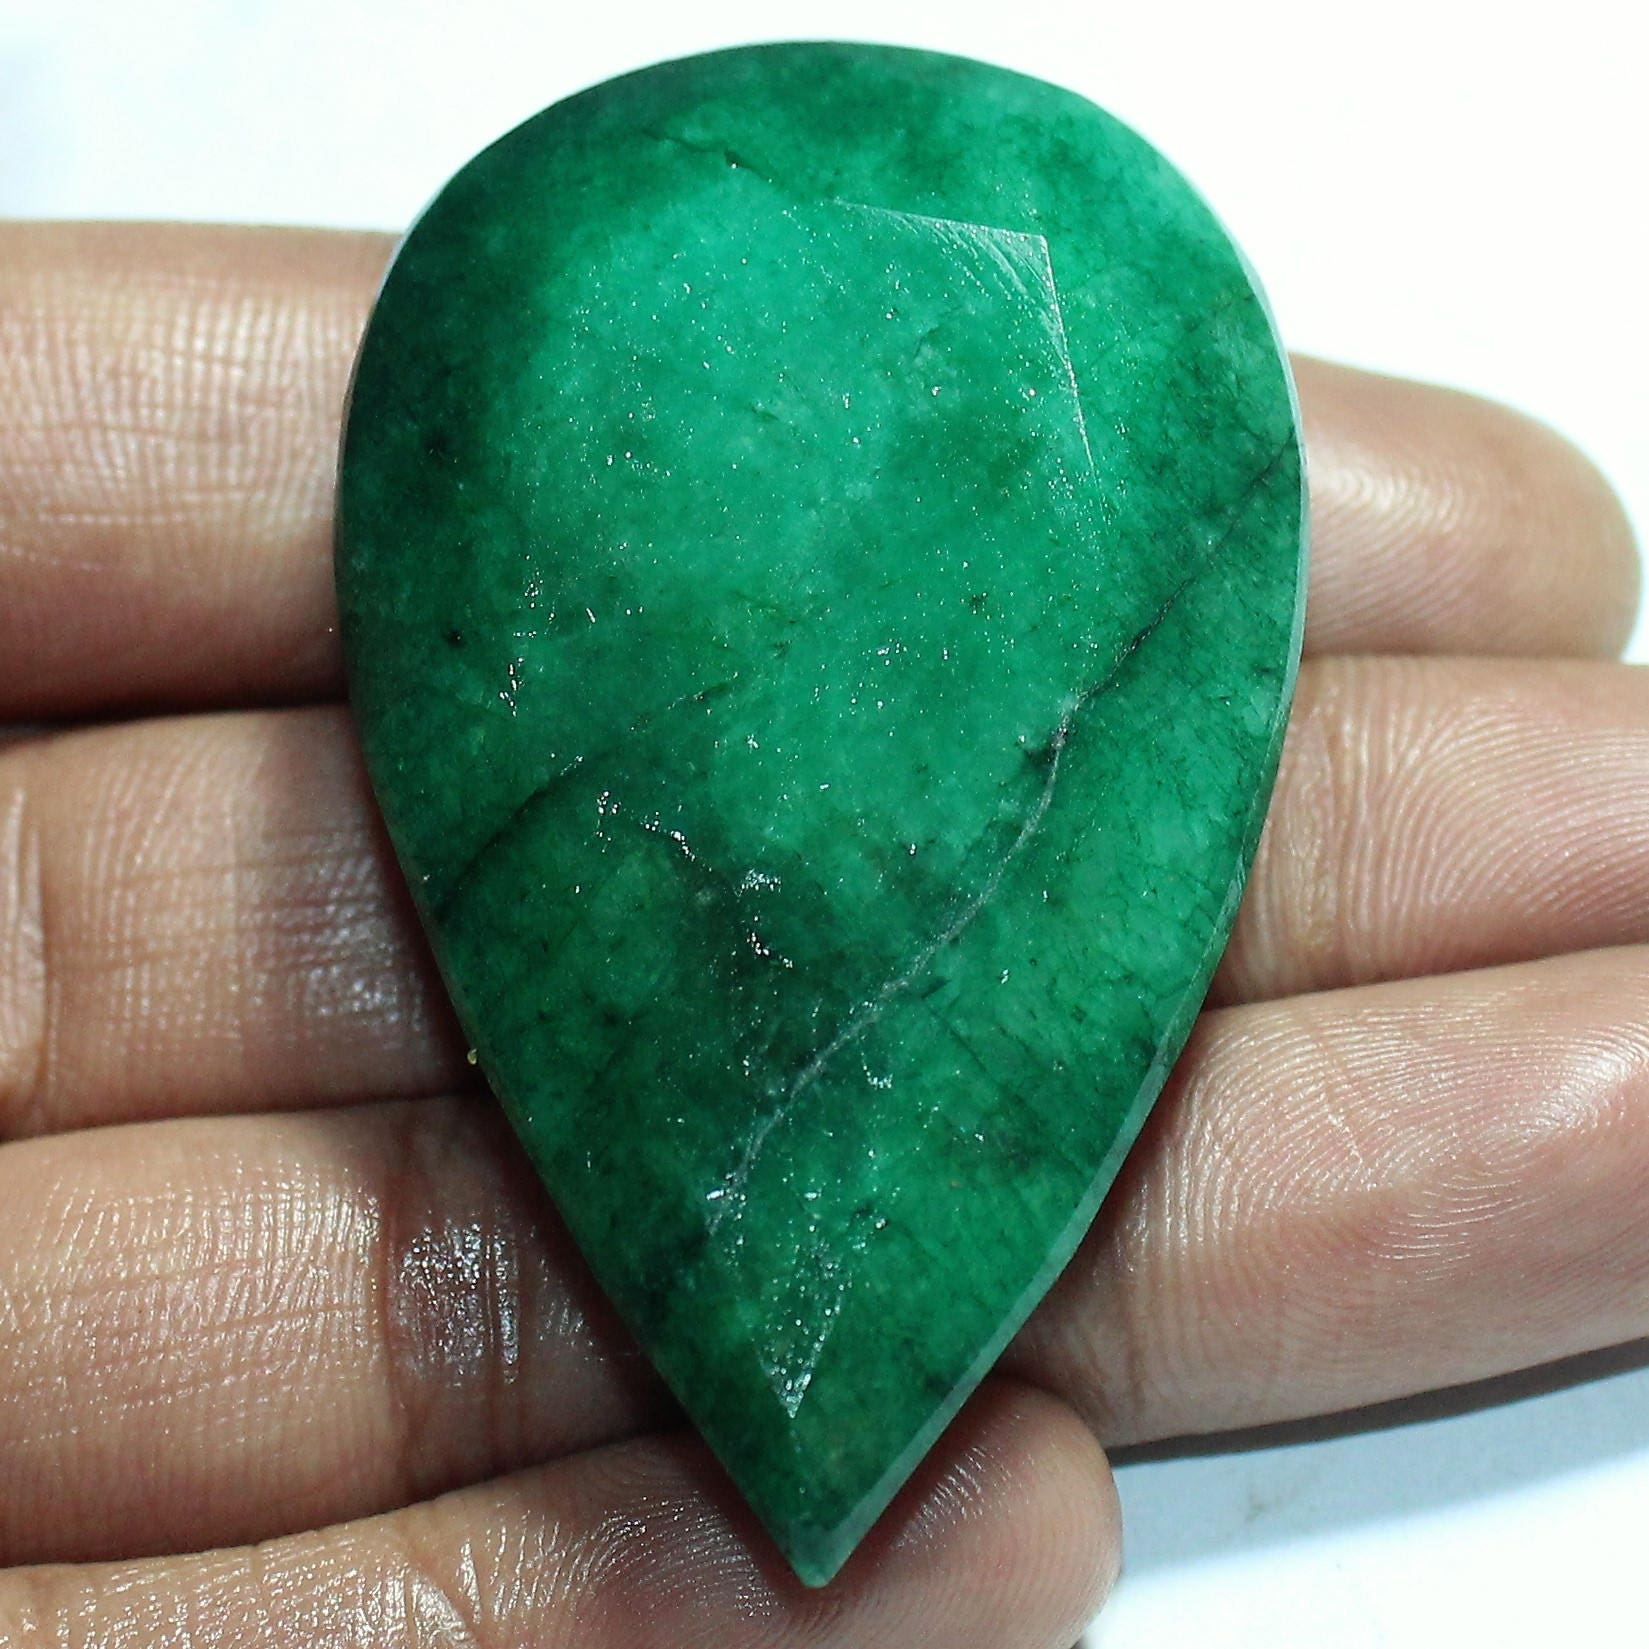 how identification to tips stone fake an is or if emerald real tell